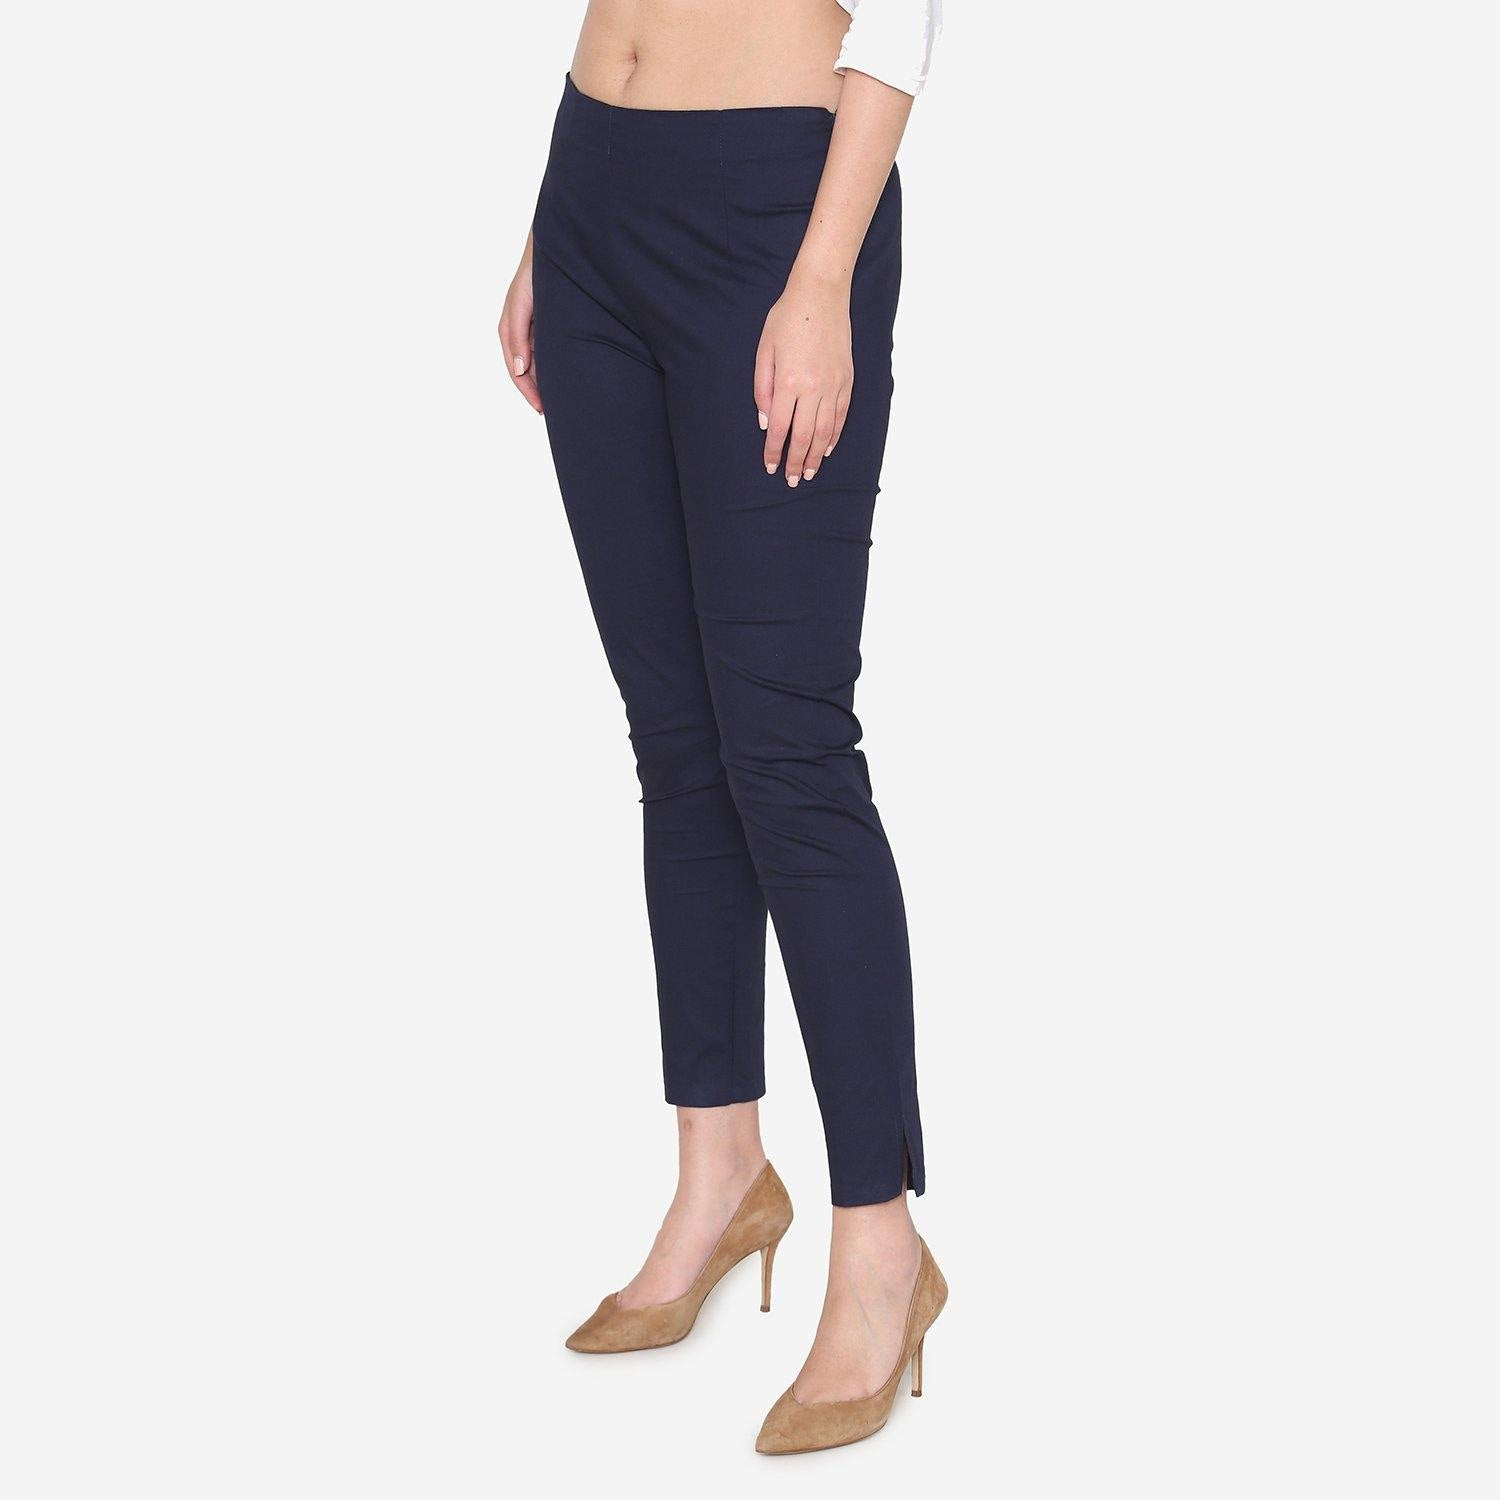 Vami Women's Cotton Formal Trousers - Navy - Bonjour Group